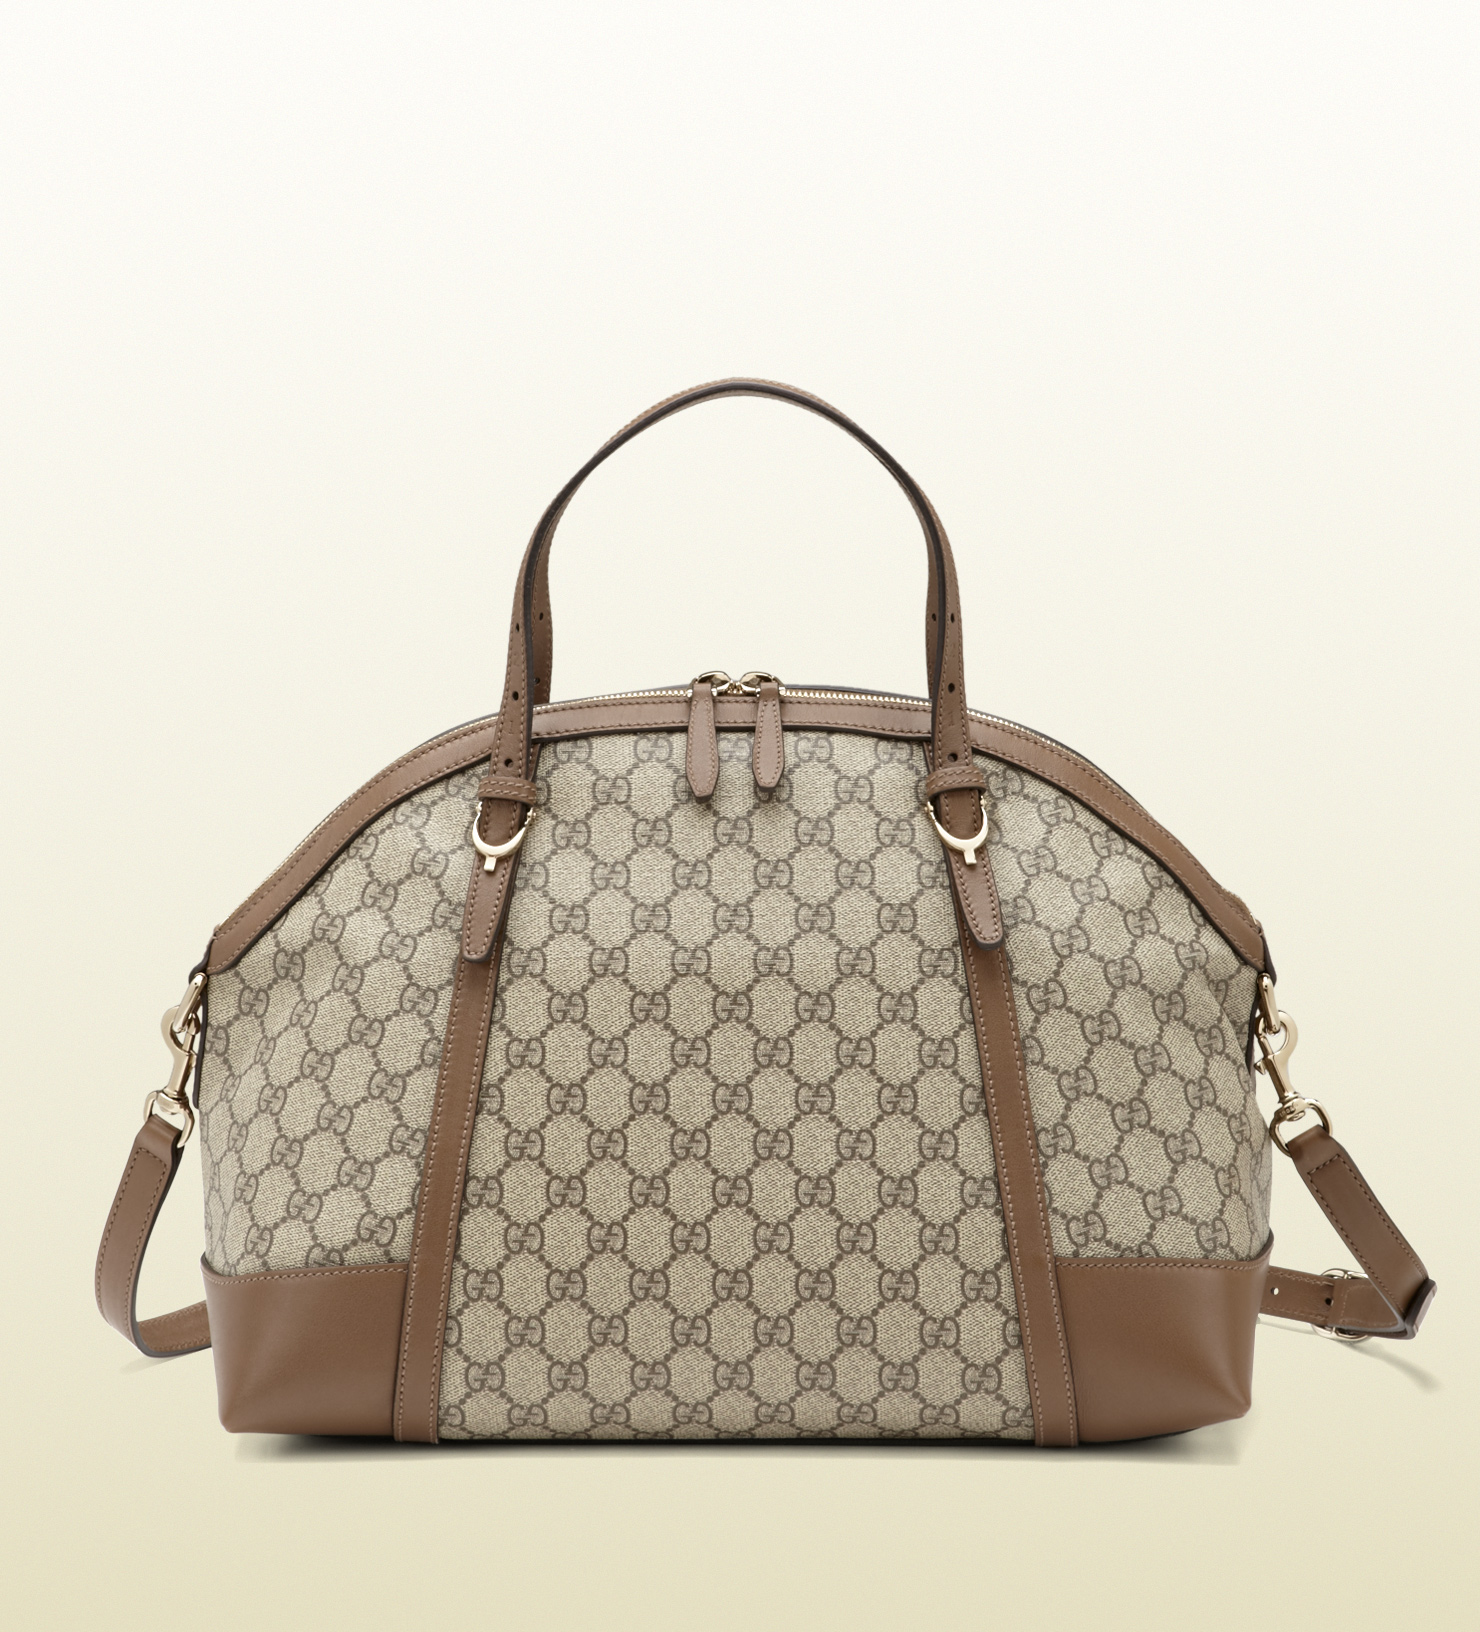 8b817ced553efe Gucci Gucci Nice Gg Supreme Canvas Top Handle Bag in Brown - Lyst